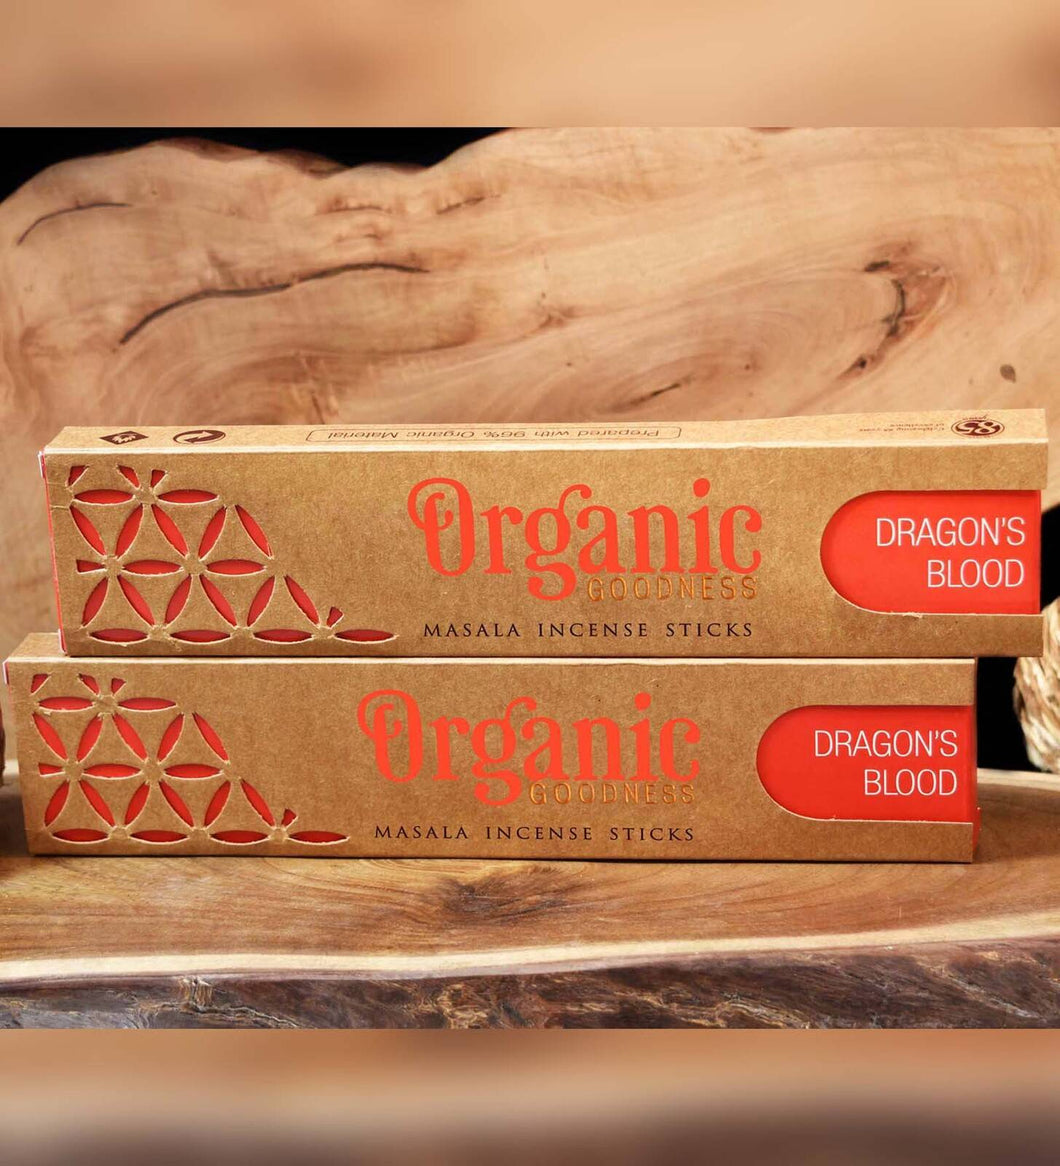 ORGANIC GOODNESS MASALA INCENSE DRAGON'S BLOOD